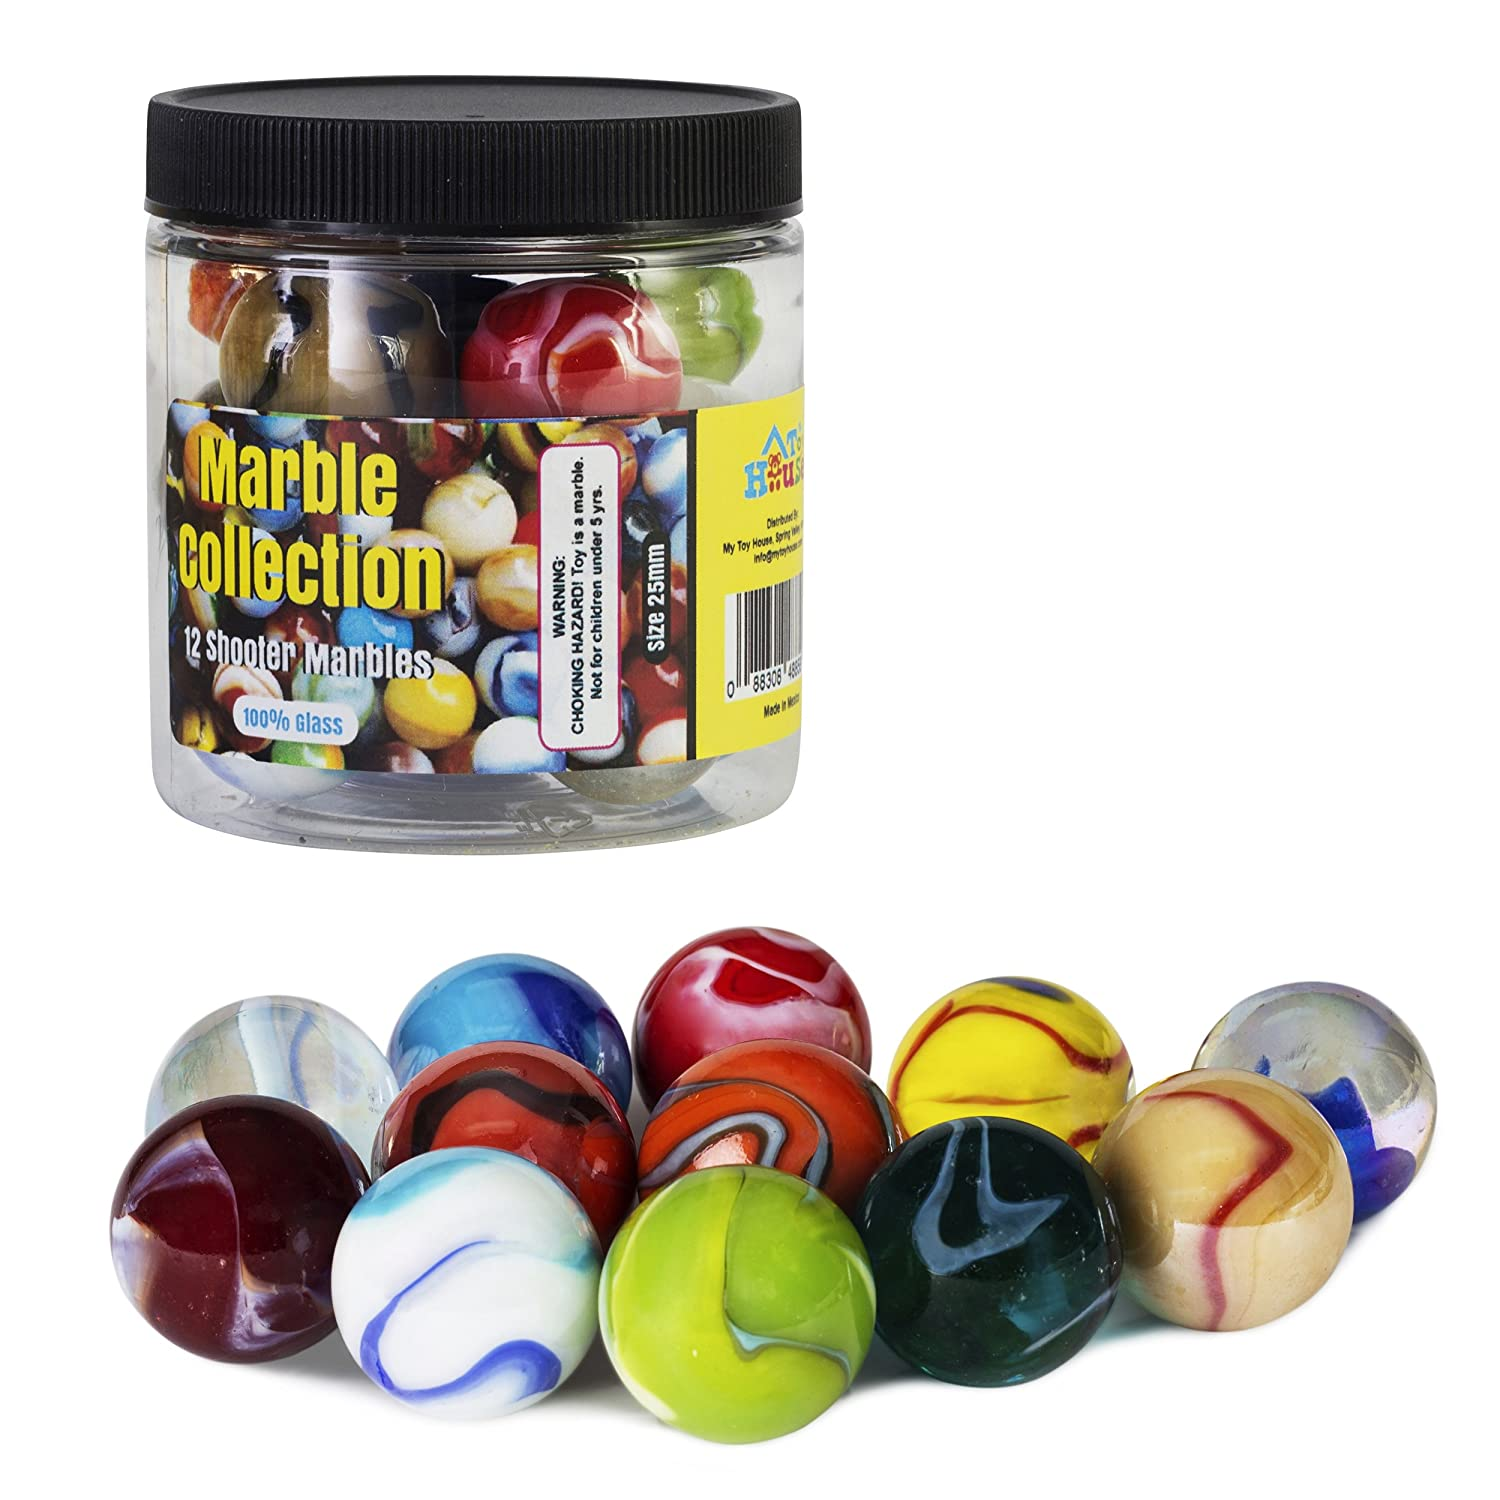 My Toy House Shooter Glass Marbles with Marble Jar For Storage Set of 12 1 inch Assorted Colors